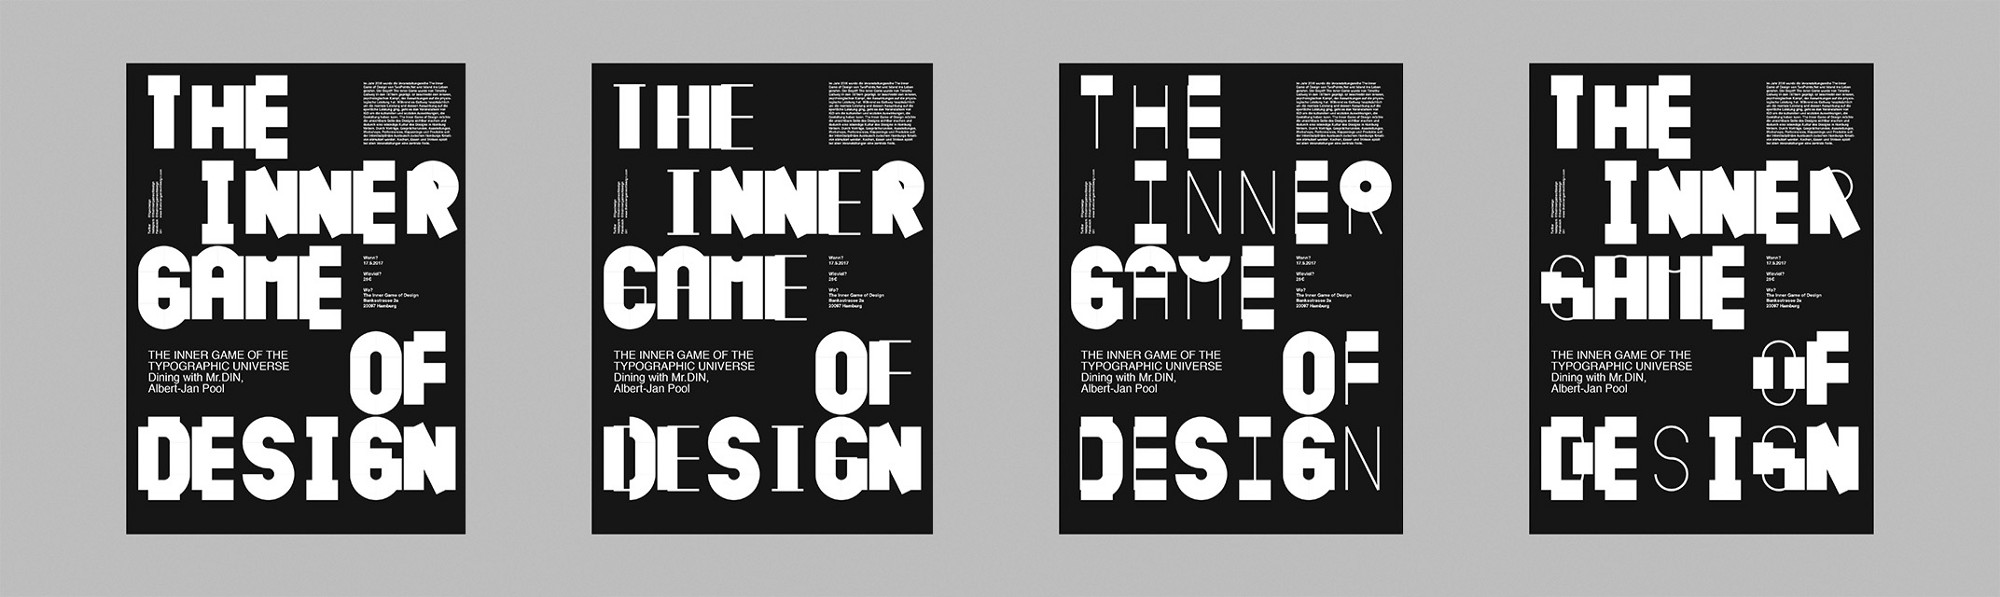 Poster Series For The Inner Game Of Design Event Featuring Albert Jan Pool